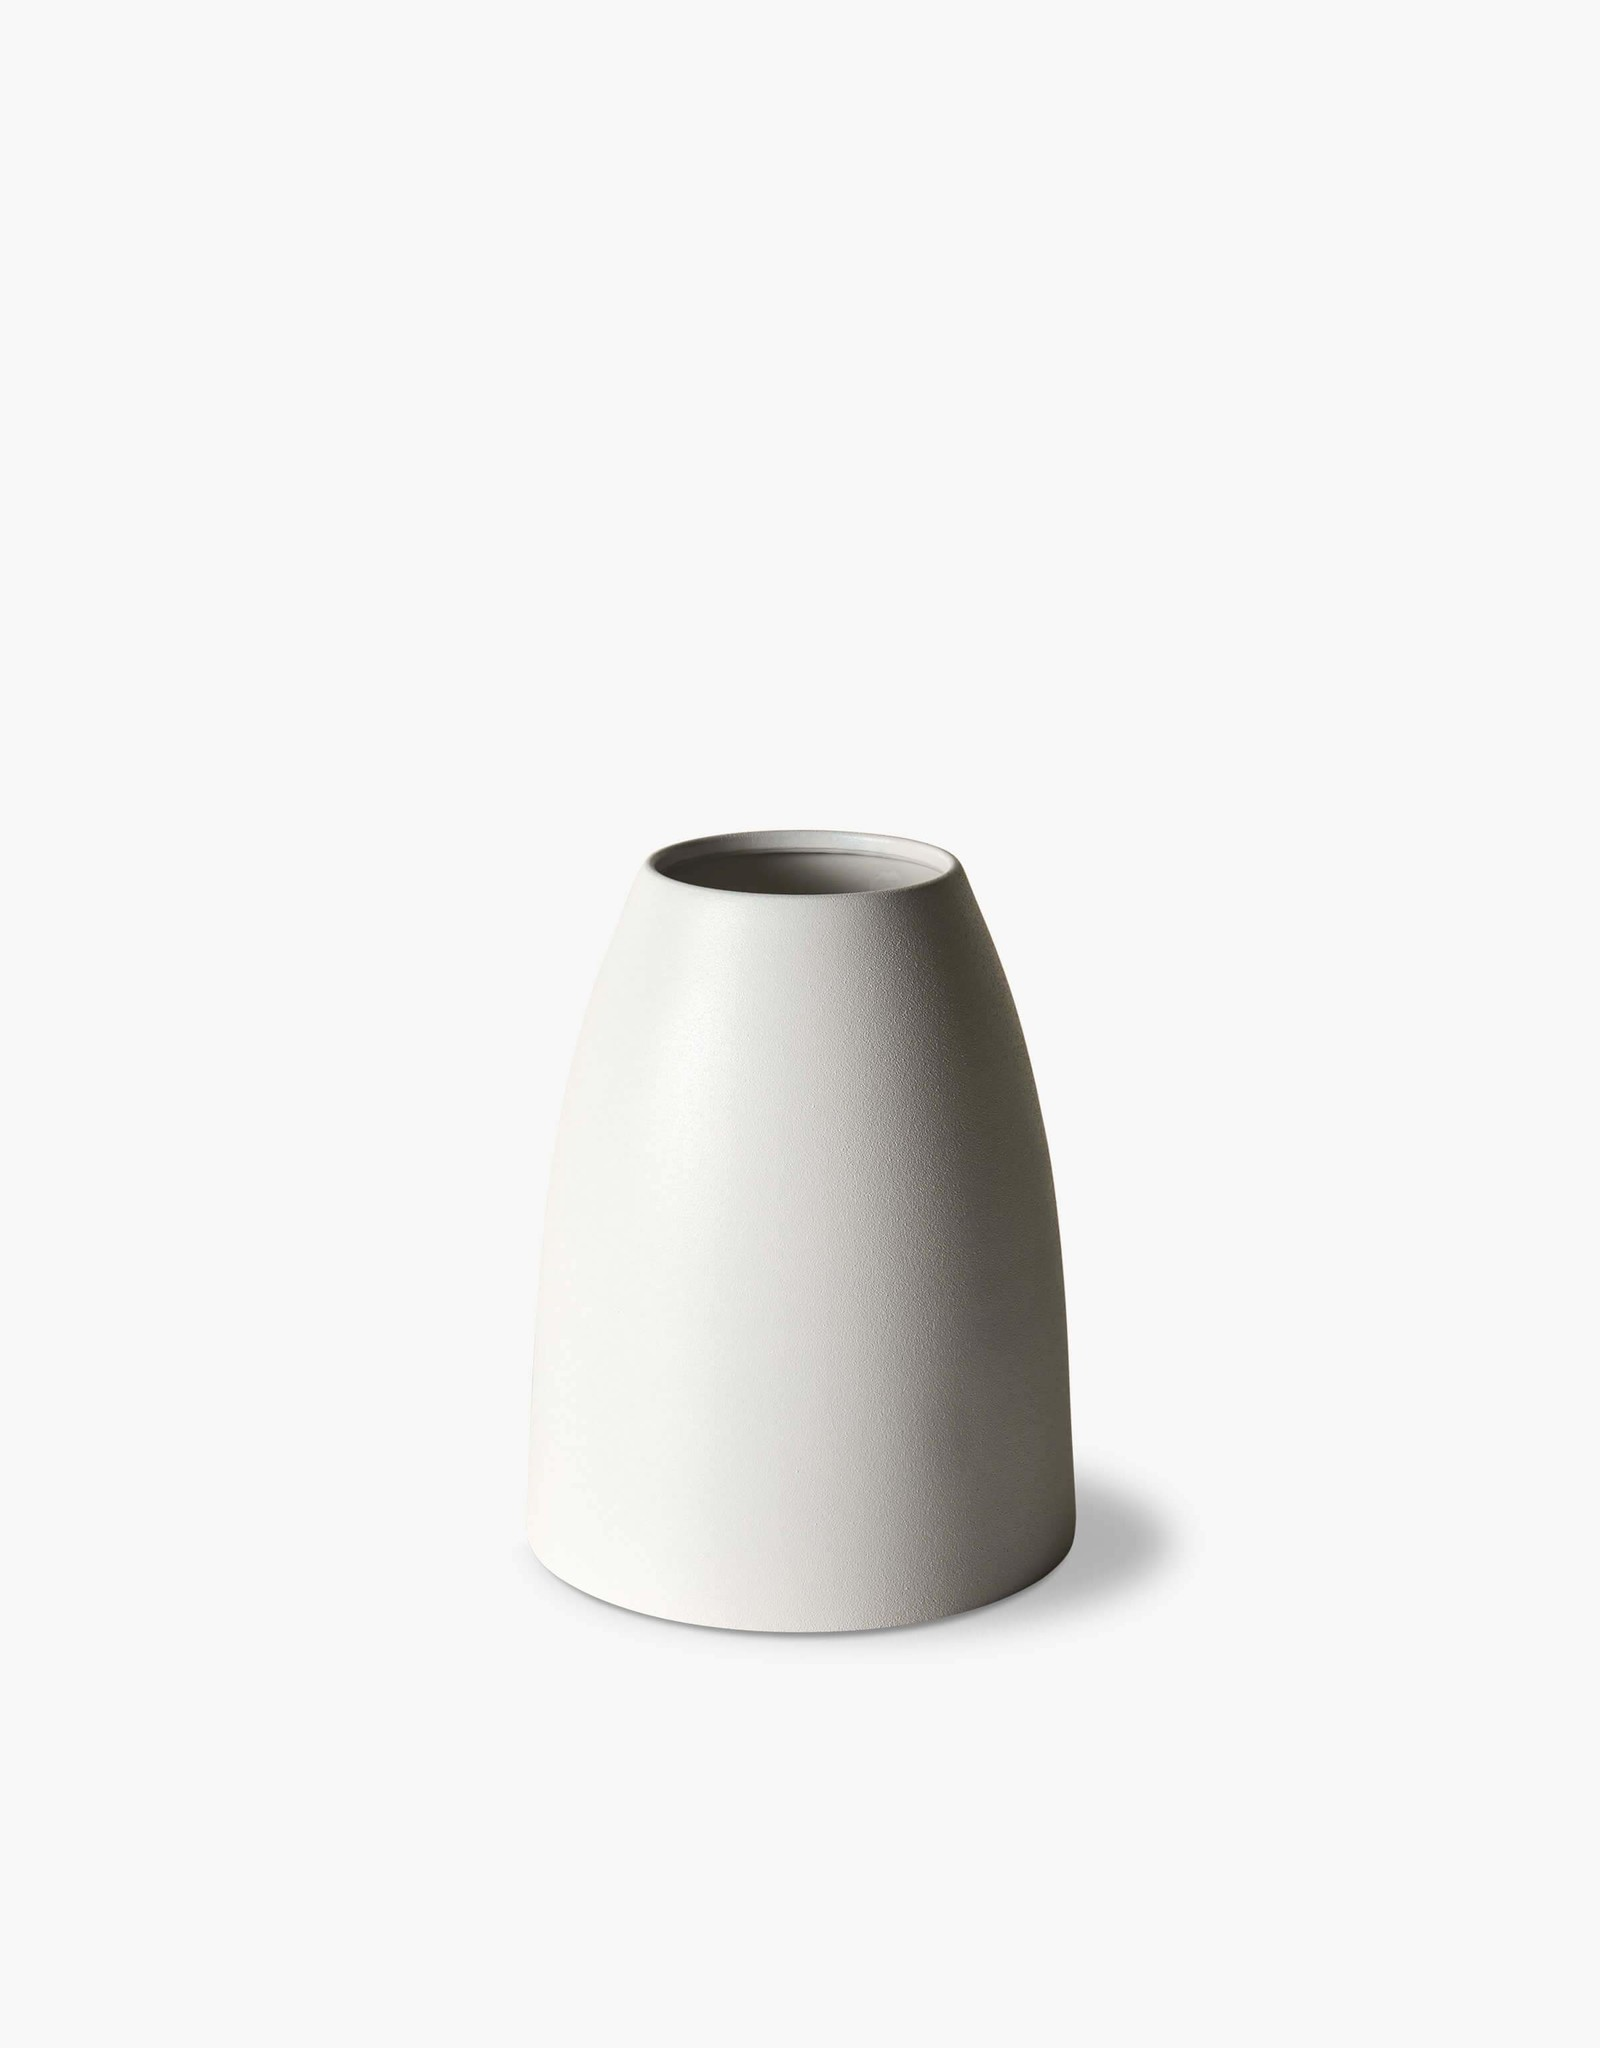 Linen and Moore Mona Cone Vase - Umber